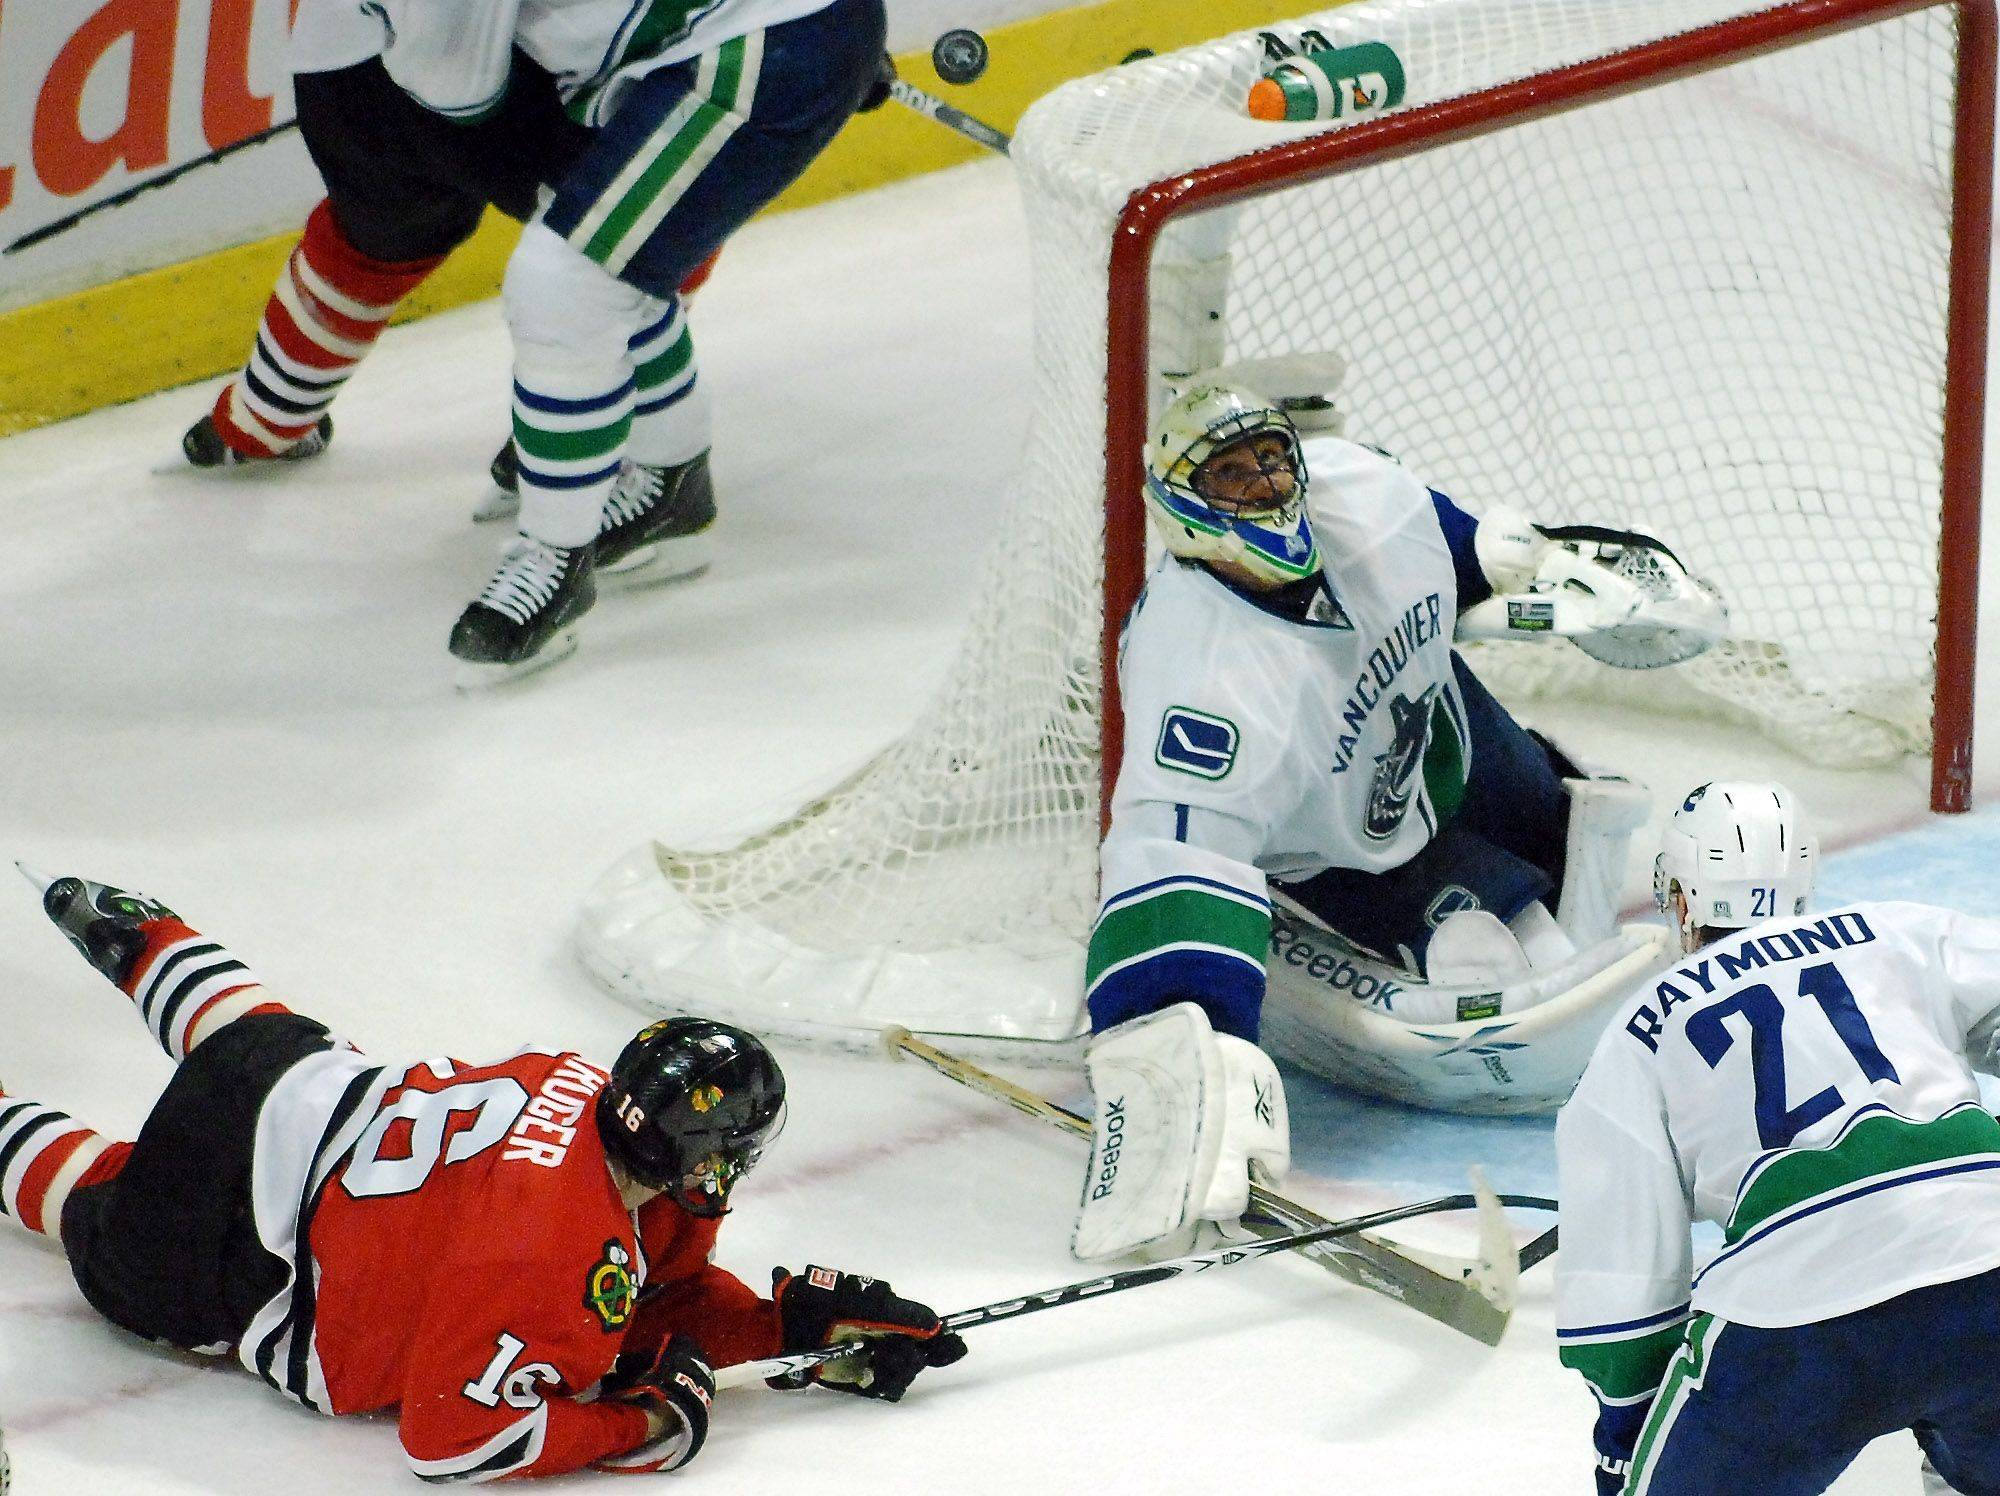 Vancouver Canucks goalie Roberto Luongo blocks a shot by Chicago Blackhawks center Marcus Kruger.